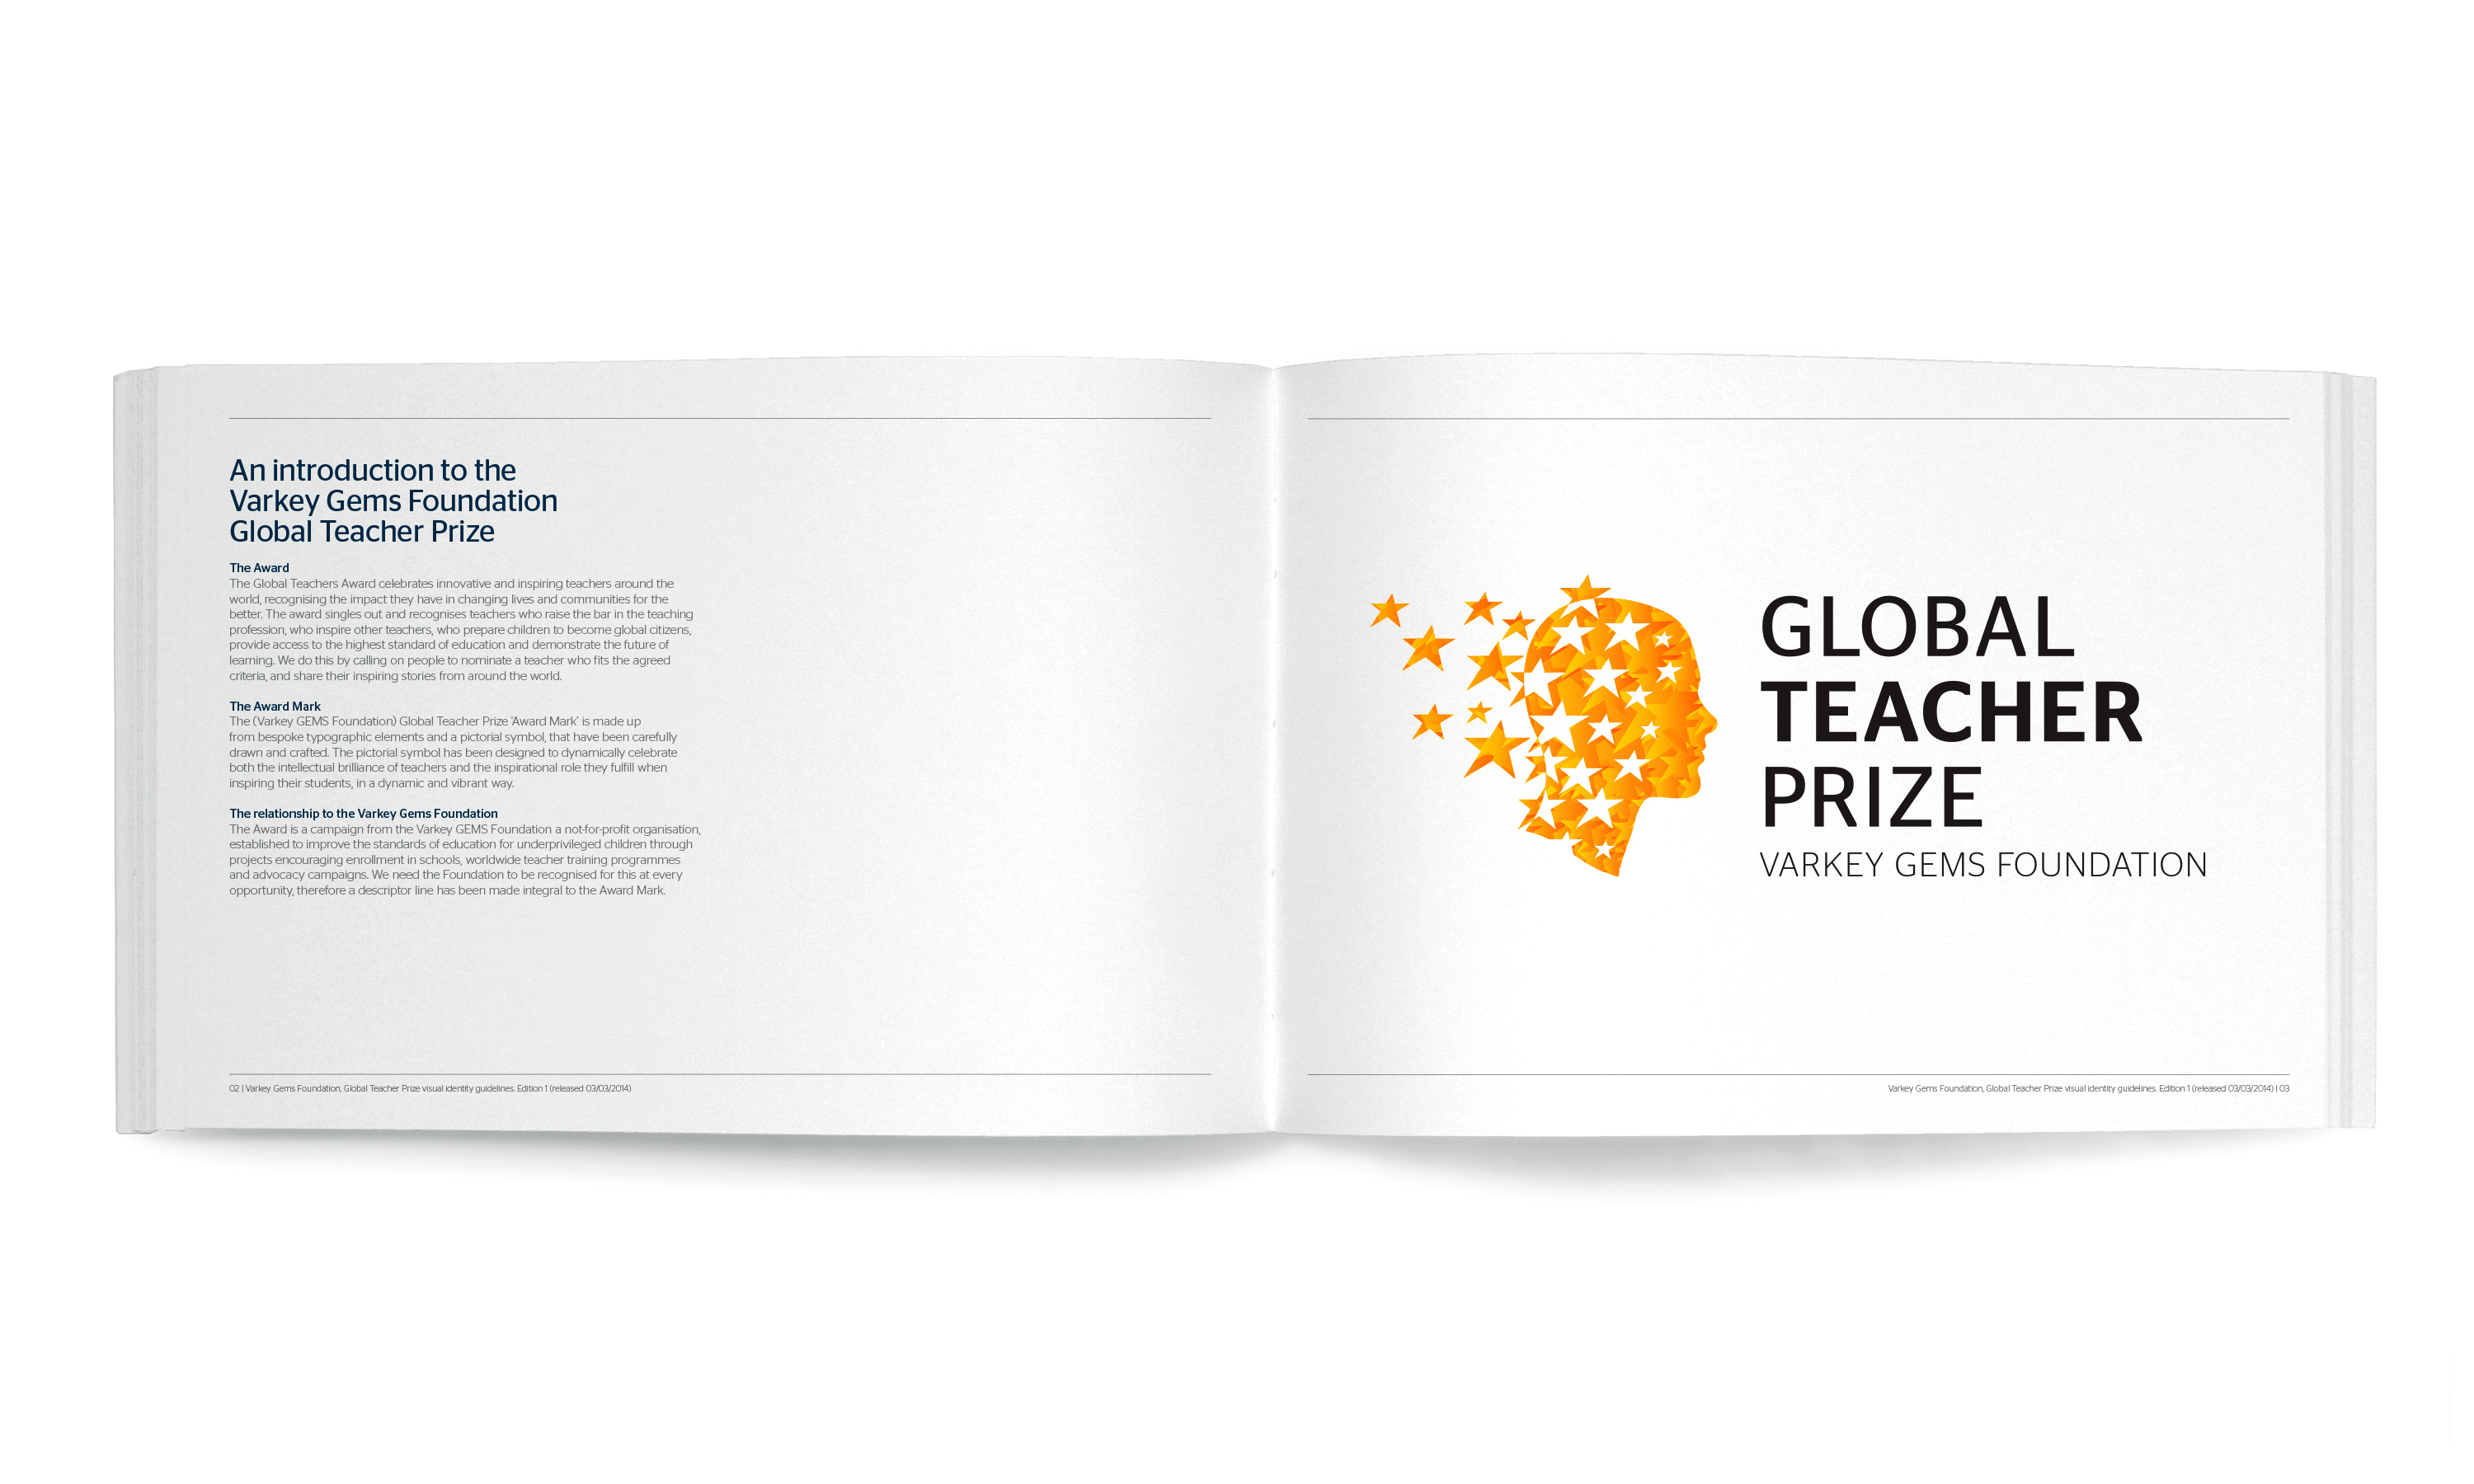 By Dana Robertson Creative Director and Founder of Neon. The Global Teacher Prize guidelines about the brand mark. Launching the